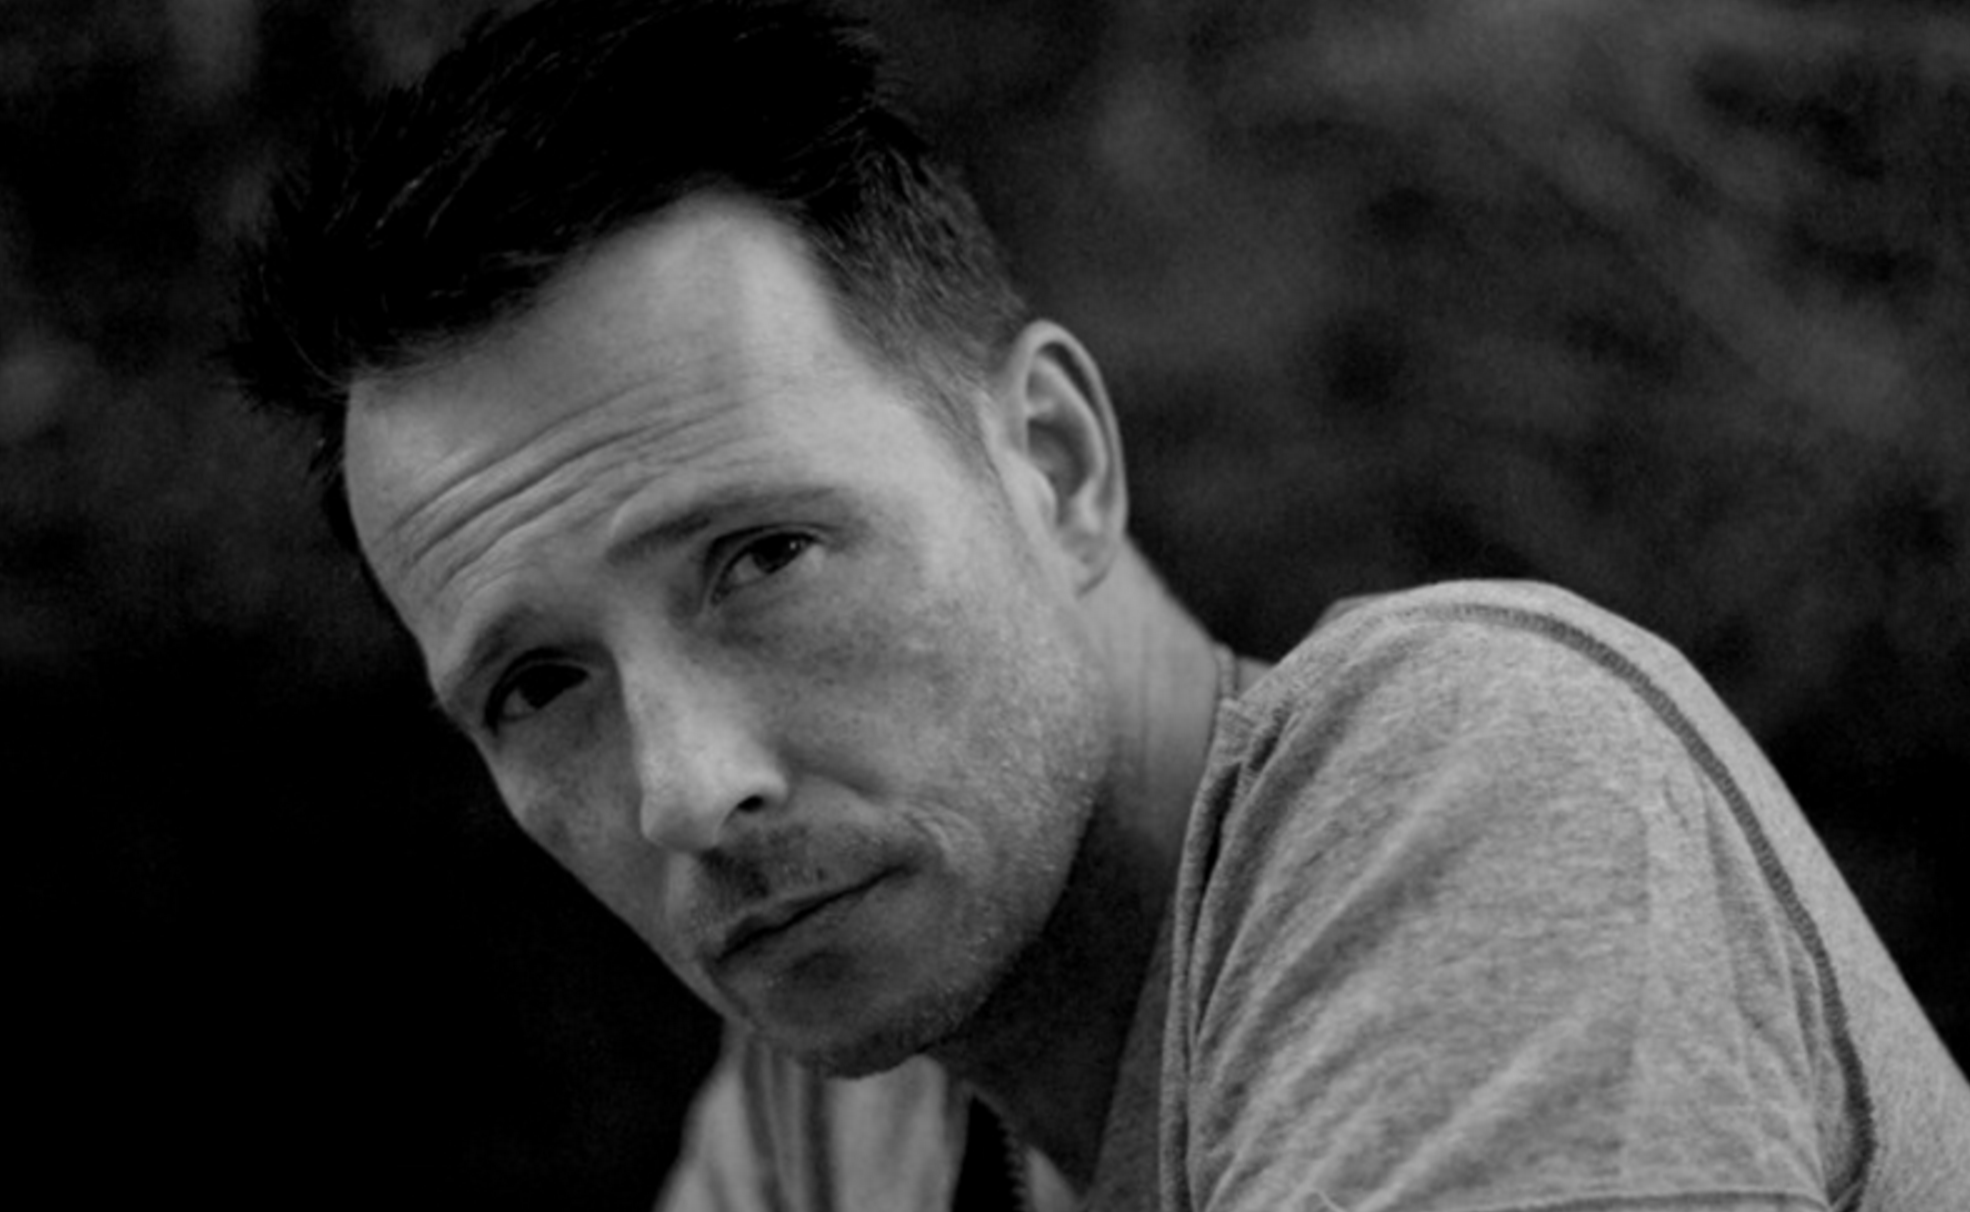 R.I.P. Scott Weiland, Stone Temple Pilots frontman, has died